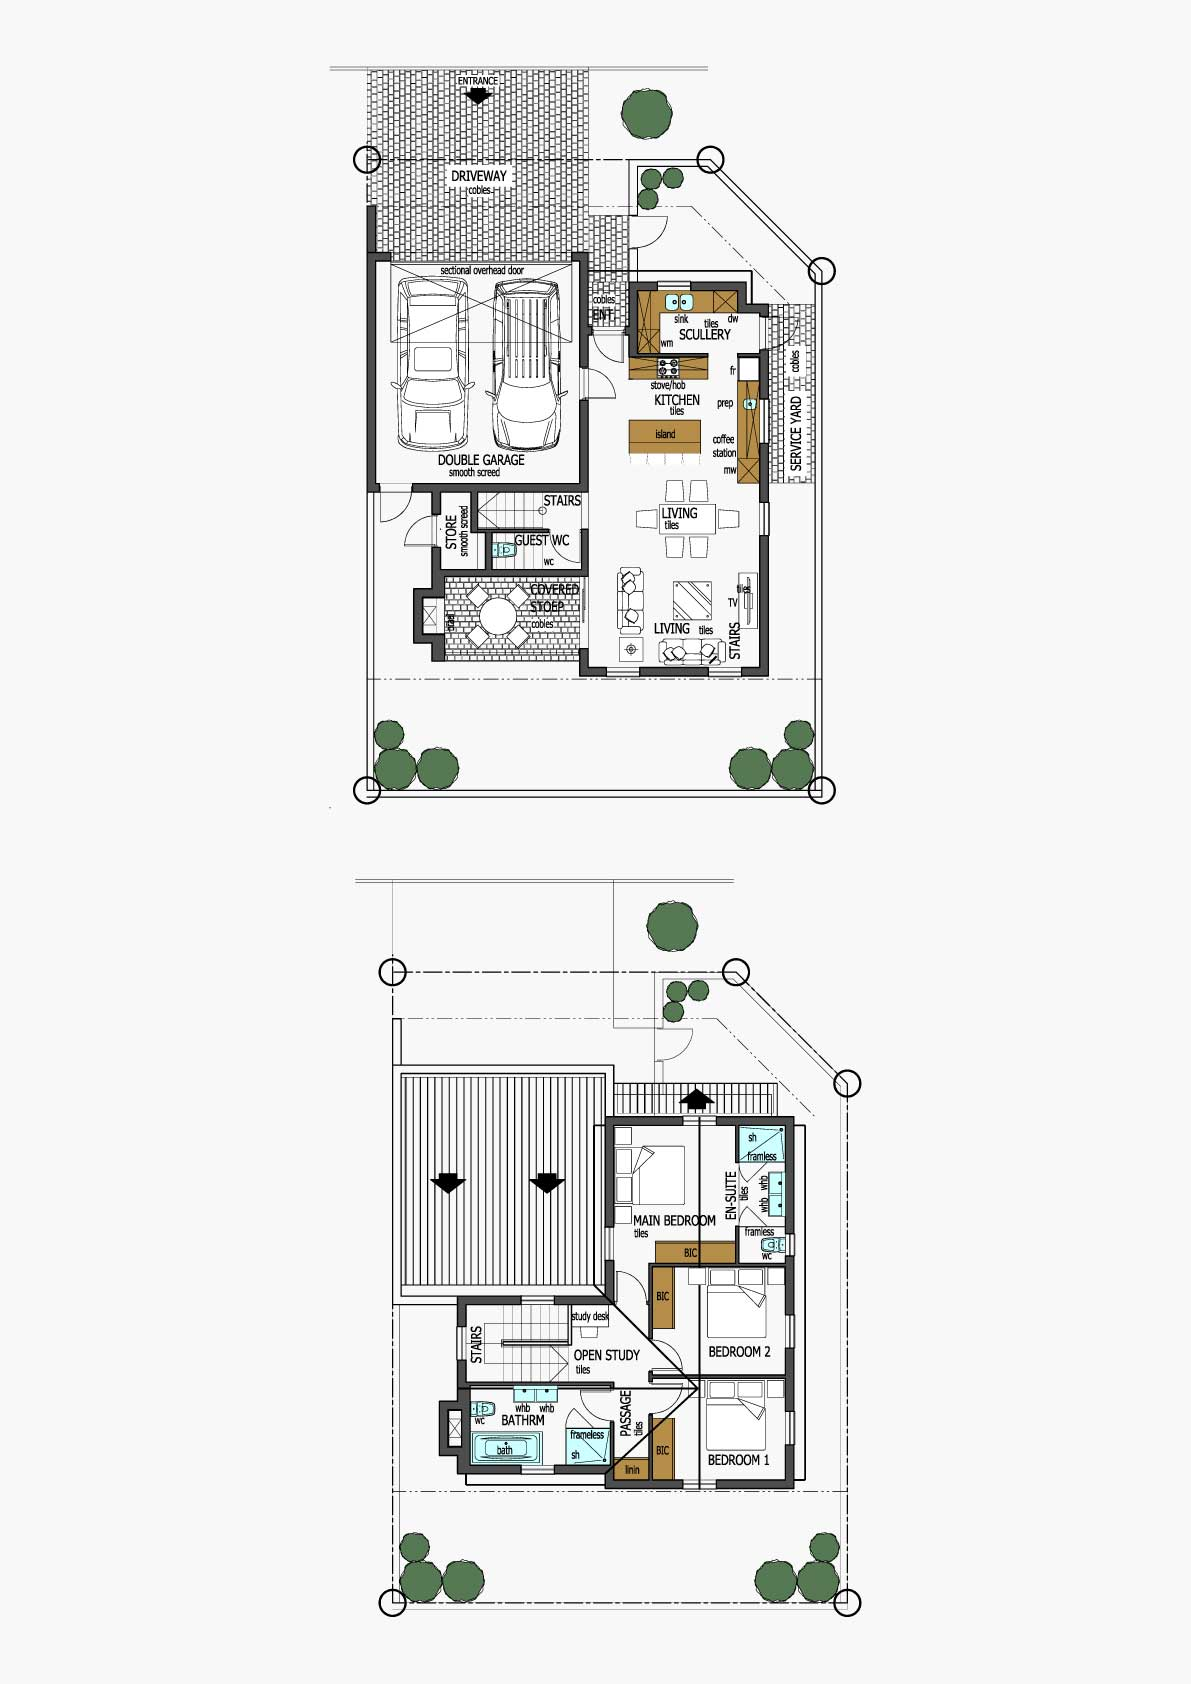 Homes Unit Layout - Type E